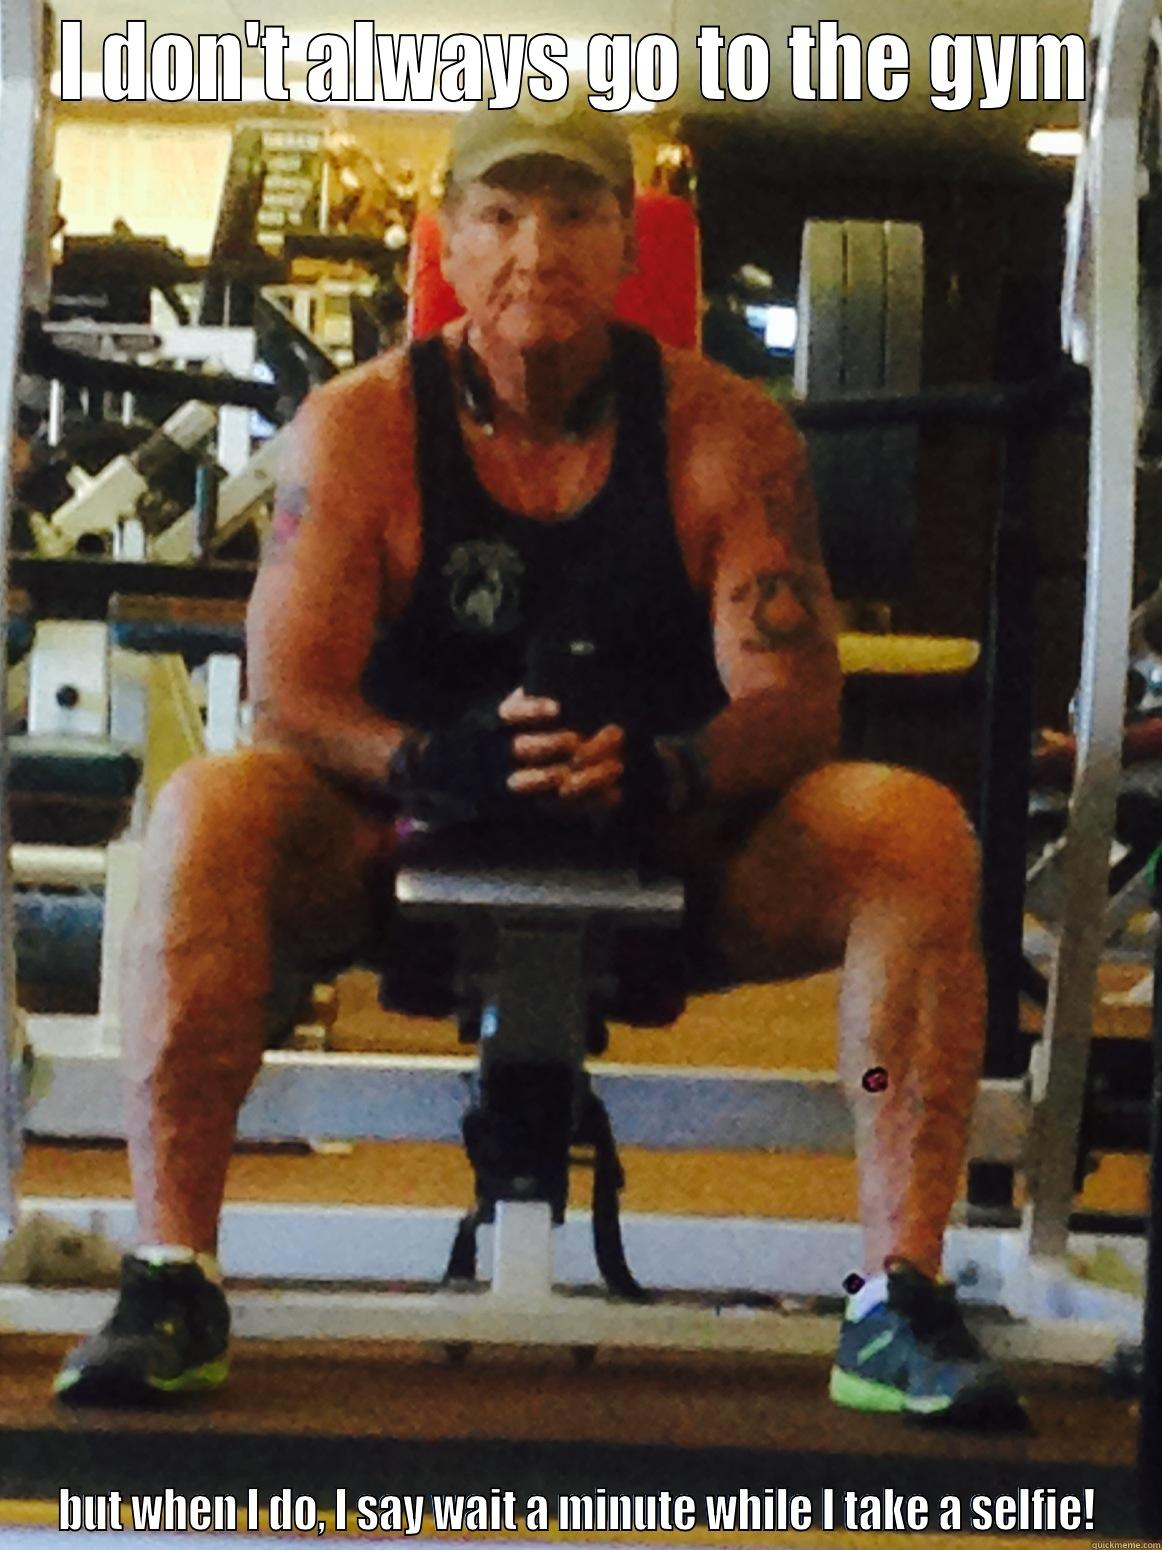 For Kelly! - I DON'T ALWAYS GO TO THE GYM BUT WHEN I DO, I SAY WAIT A MINUTE WHILE I TAKE A SELFIE! Misc